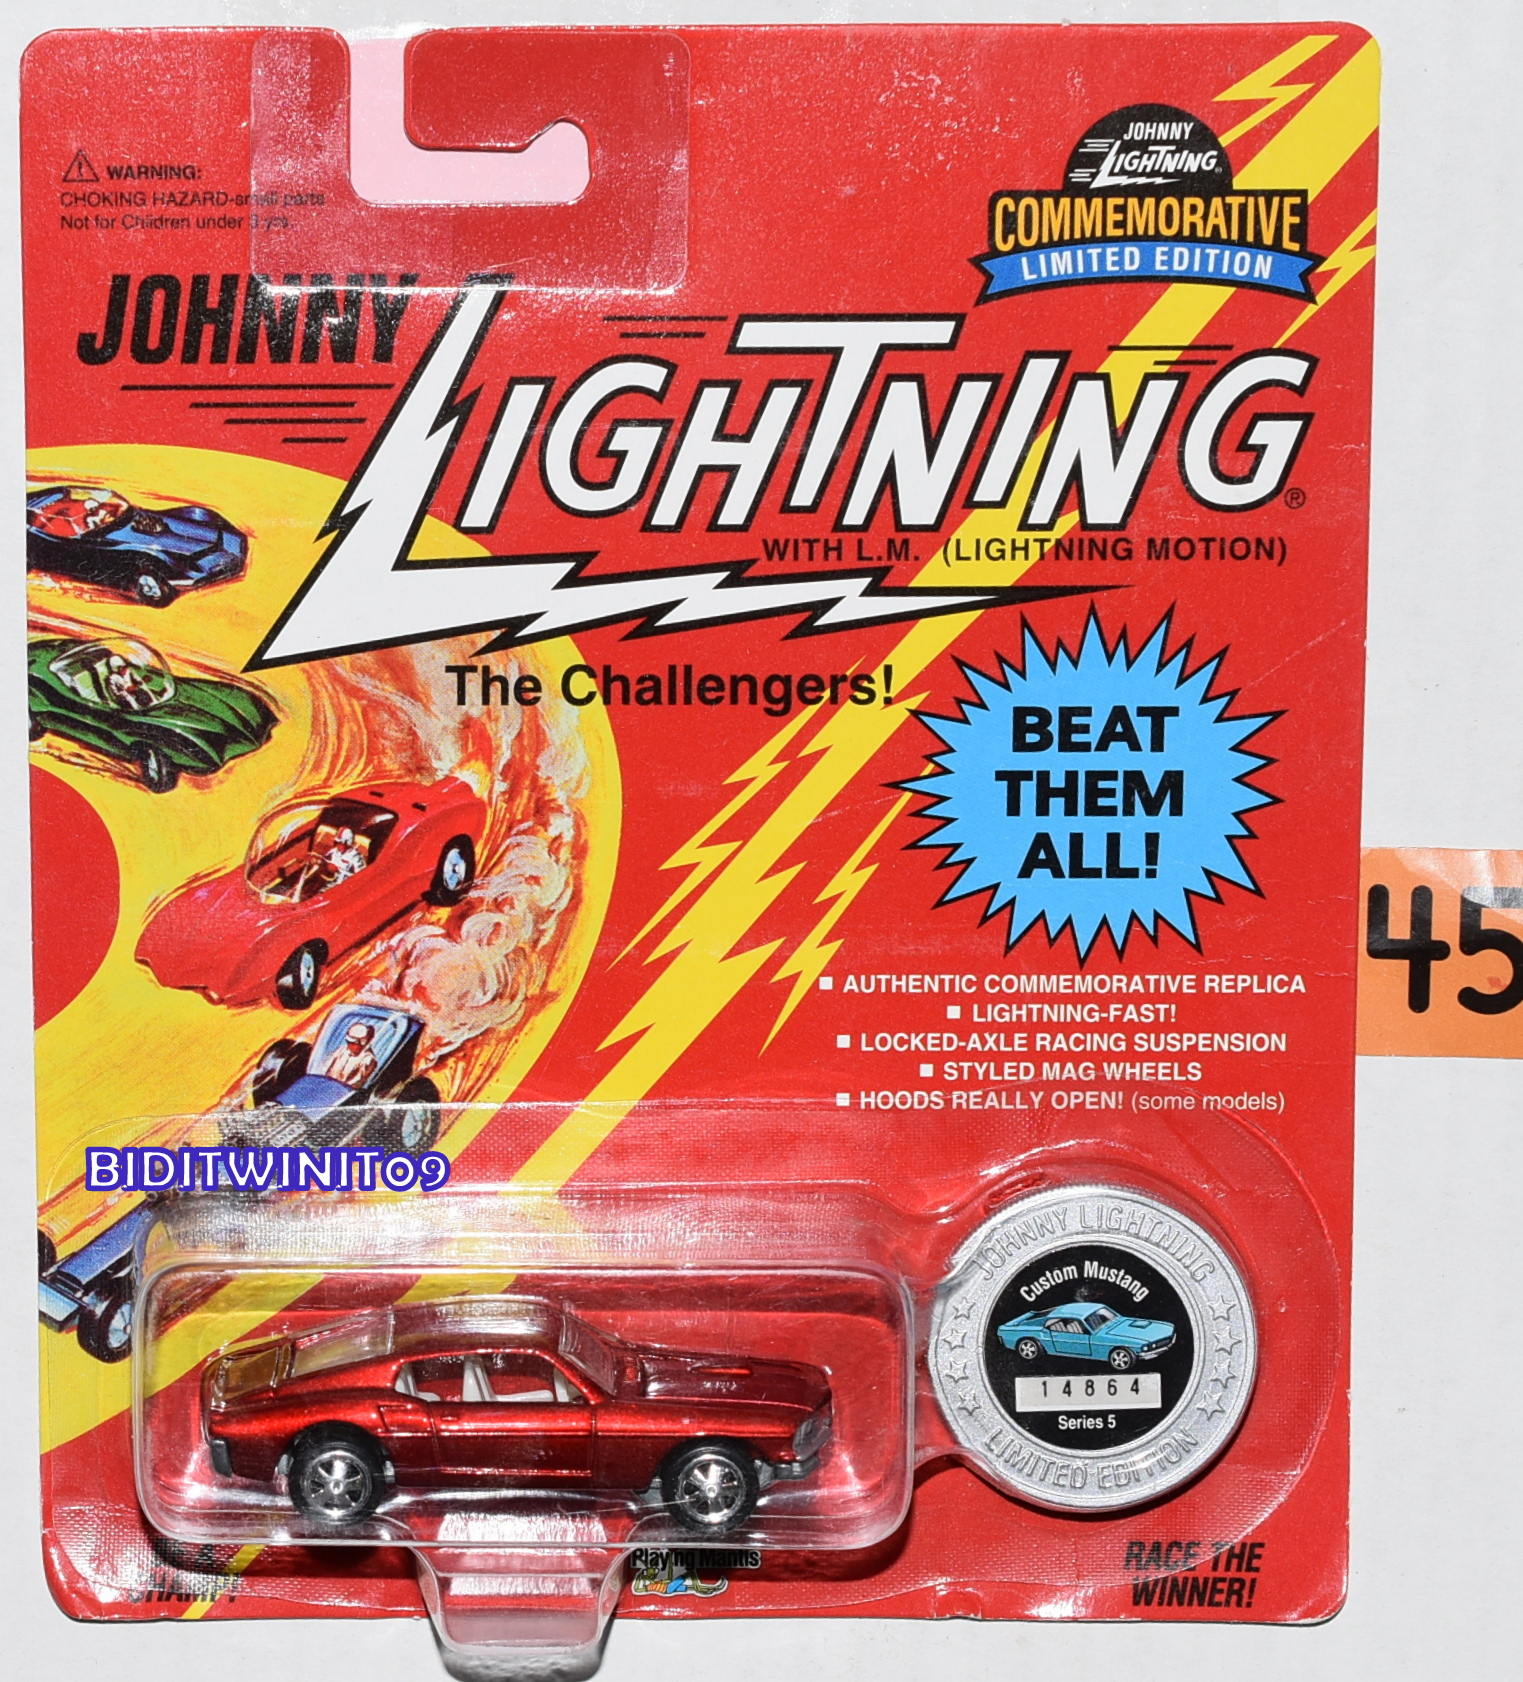 JOHNNY LIGHTNING COMMEMORATIVE CUSTOM MUSTANG SERIES 5 RED E+